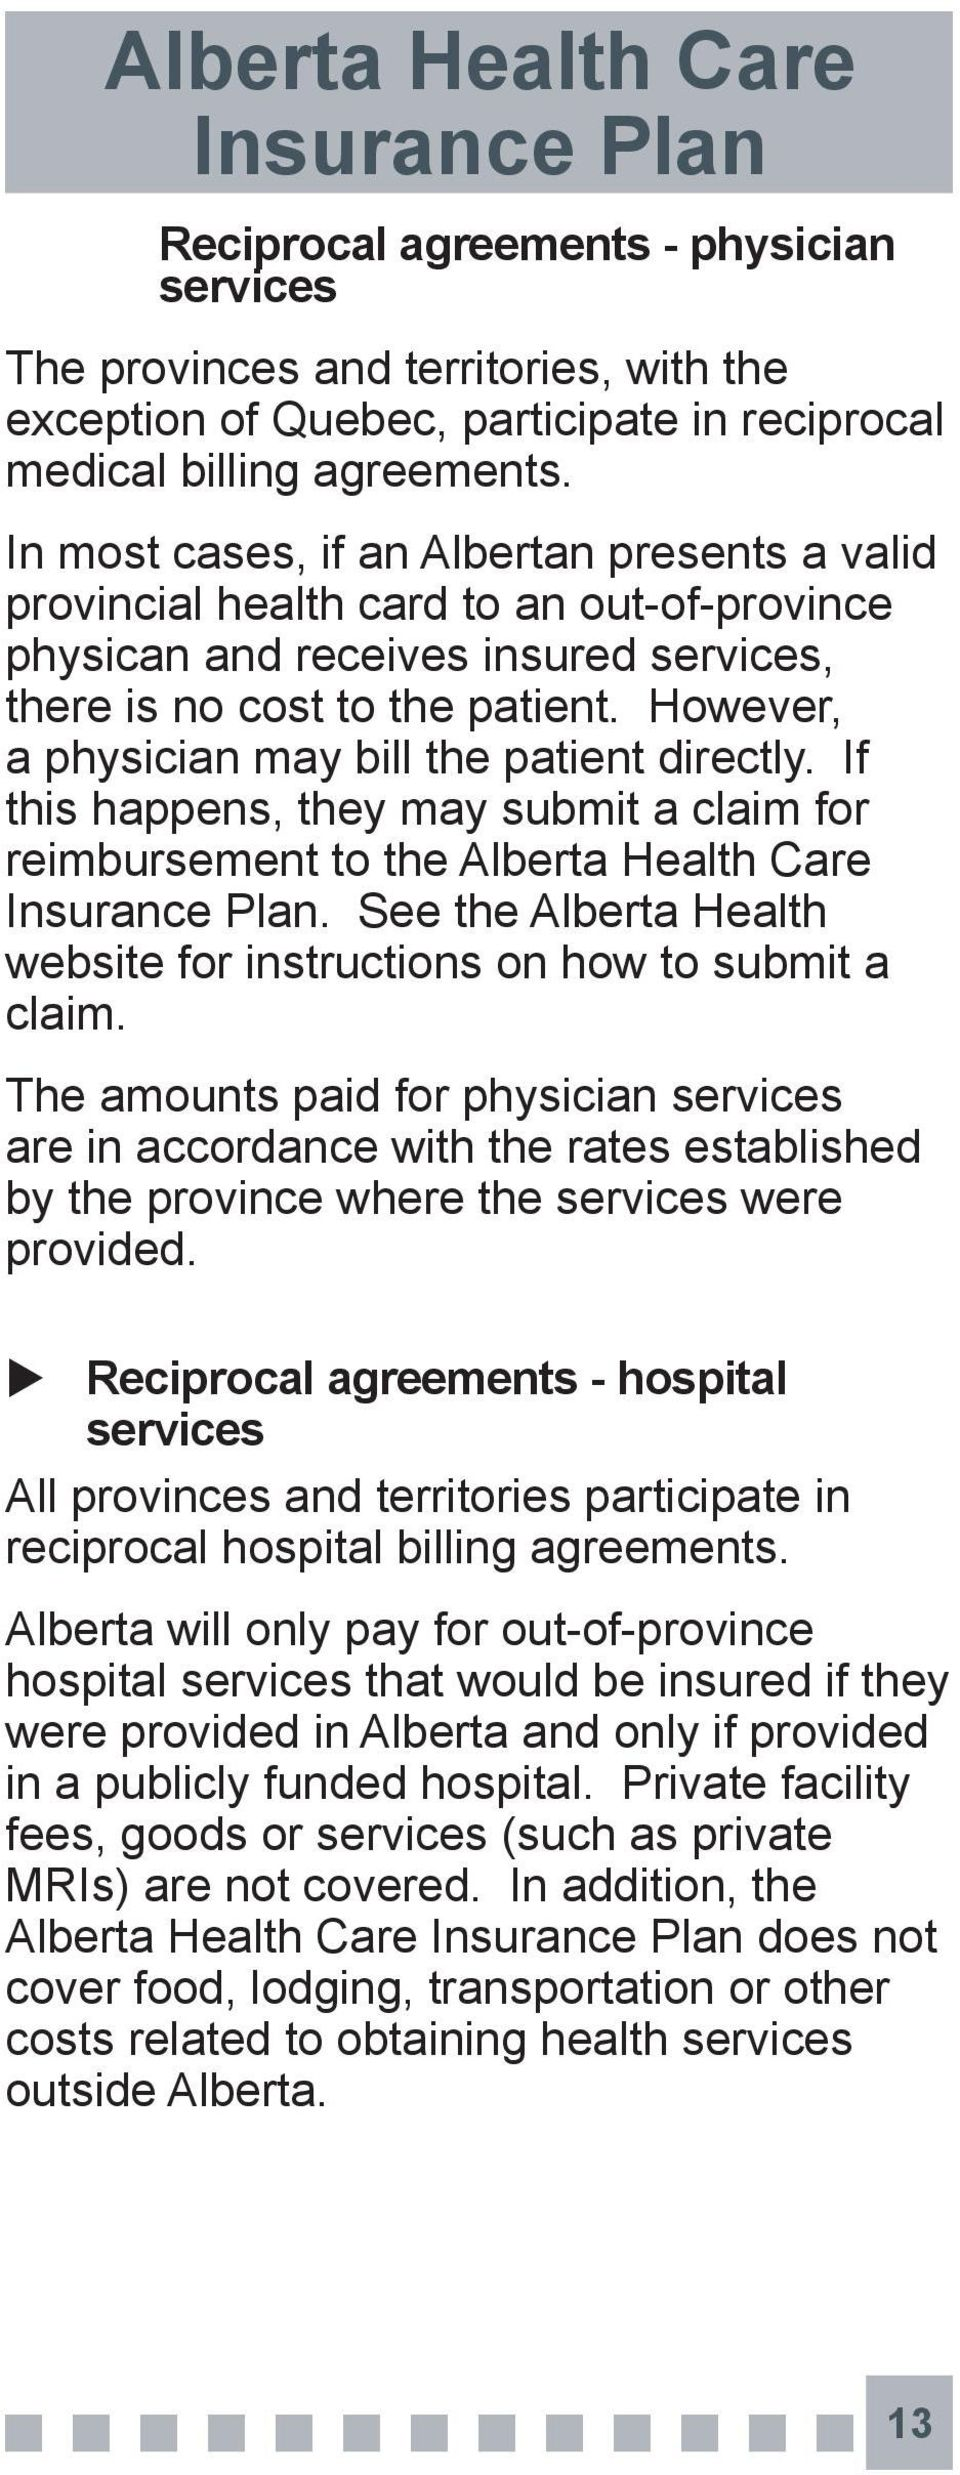 However, a physician may bill the patient directly. If this happens, they may submit a claim for reimbursement to the Alberta Health Care.